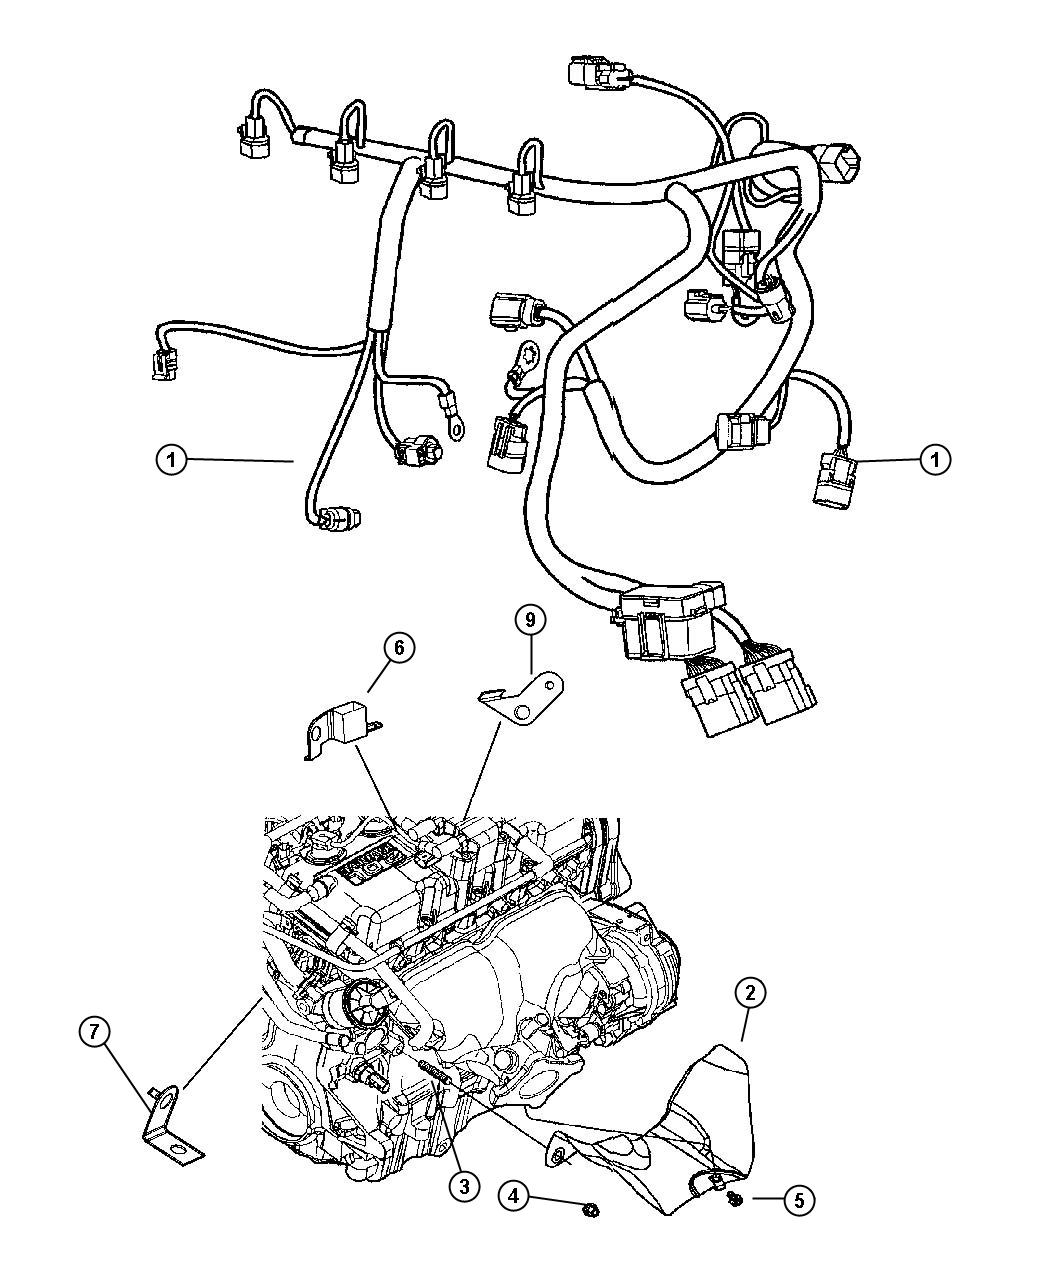 2005 Dodge Neon Wiring, Engine